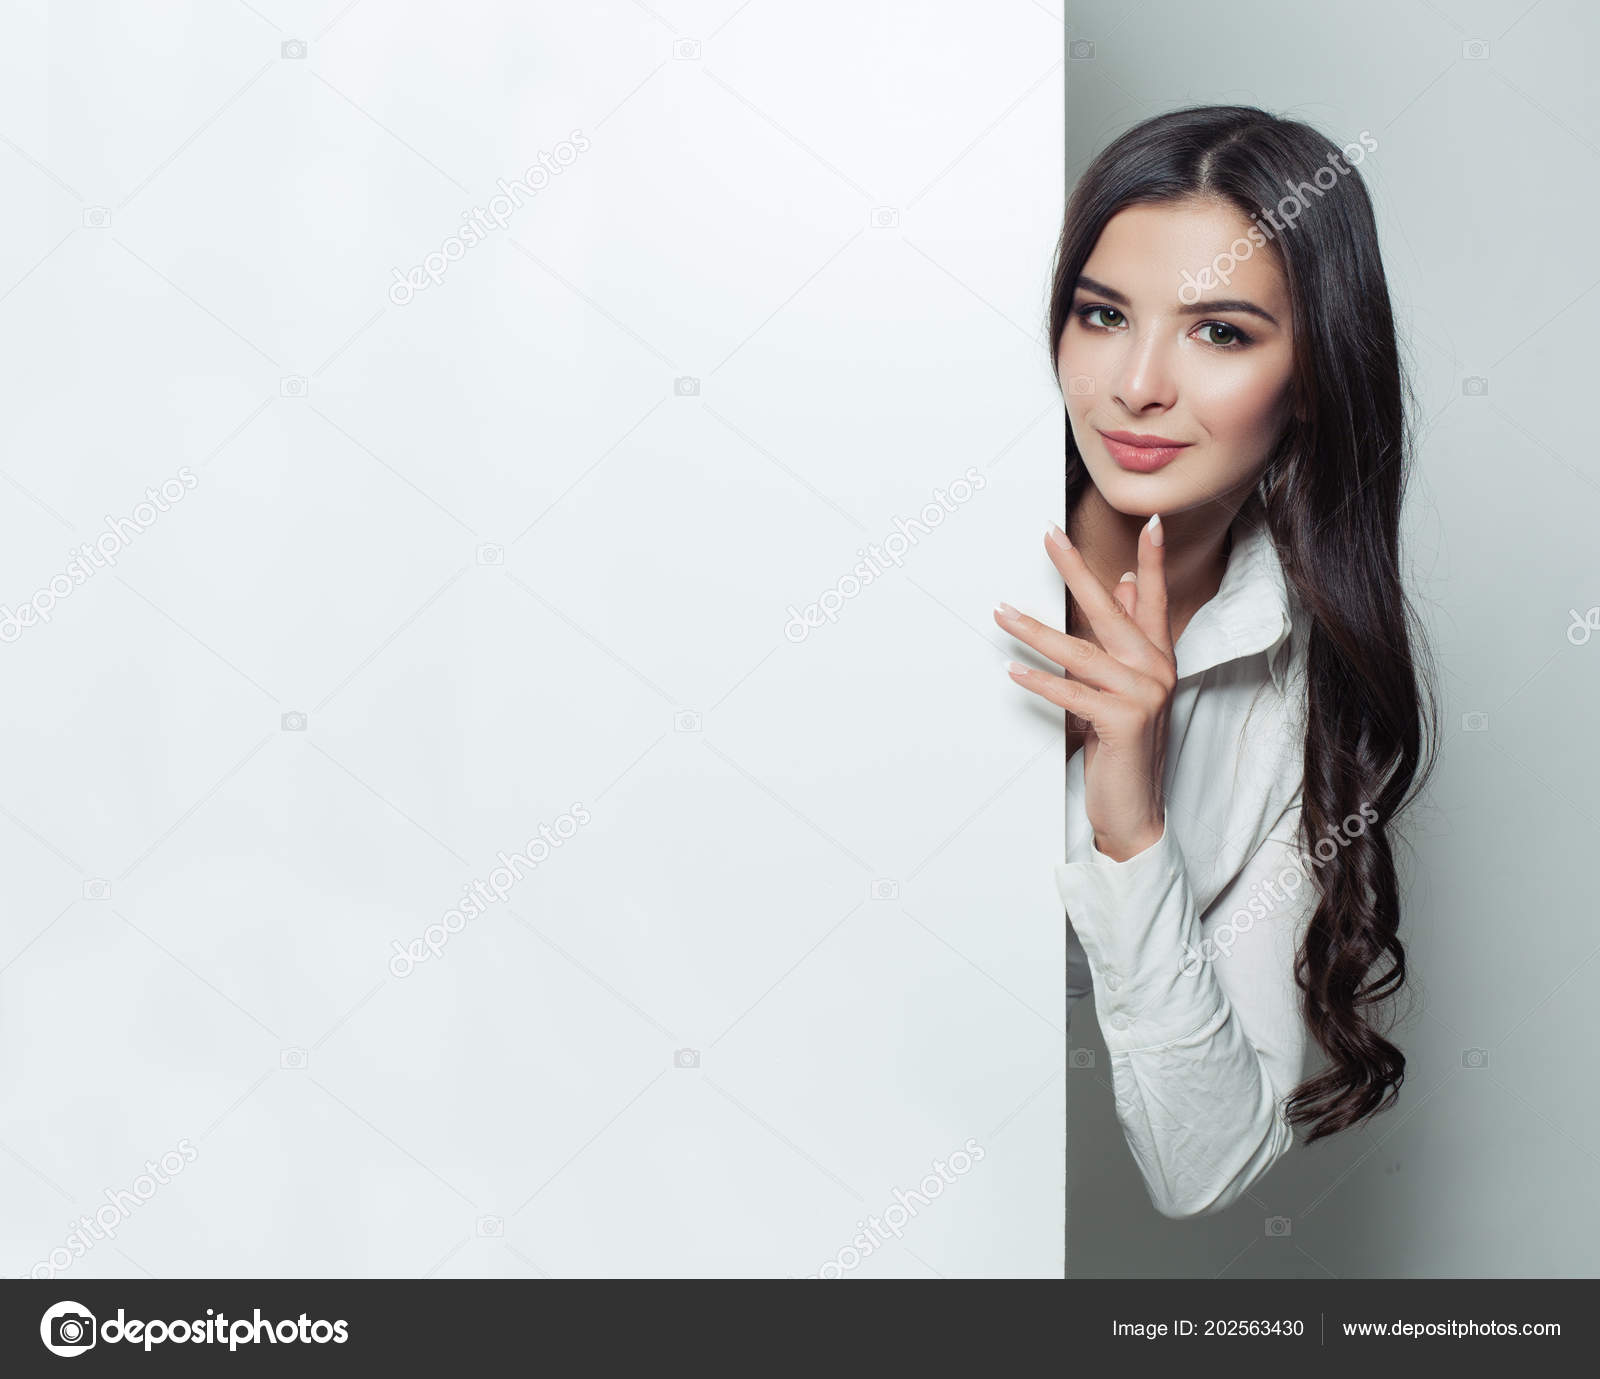 Student Woman Showing White Blank Paper Banner Background Copy Space Stock Photo C Millafedotova 202563430